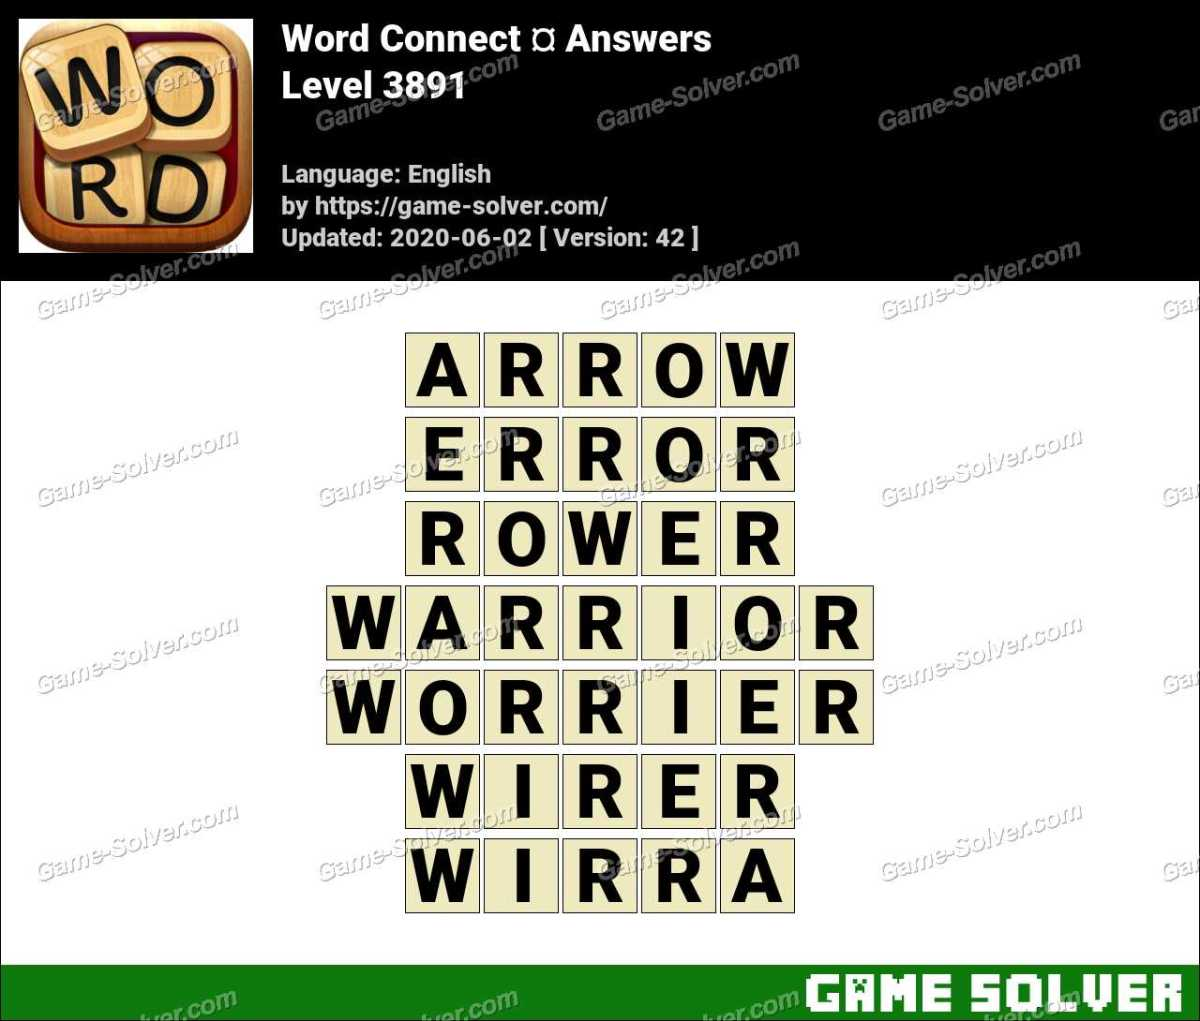 Word Connect Level 3891 Answers